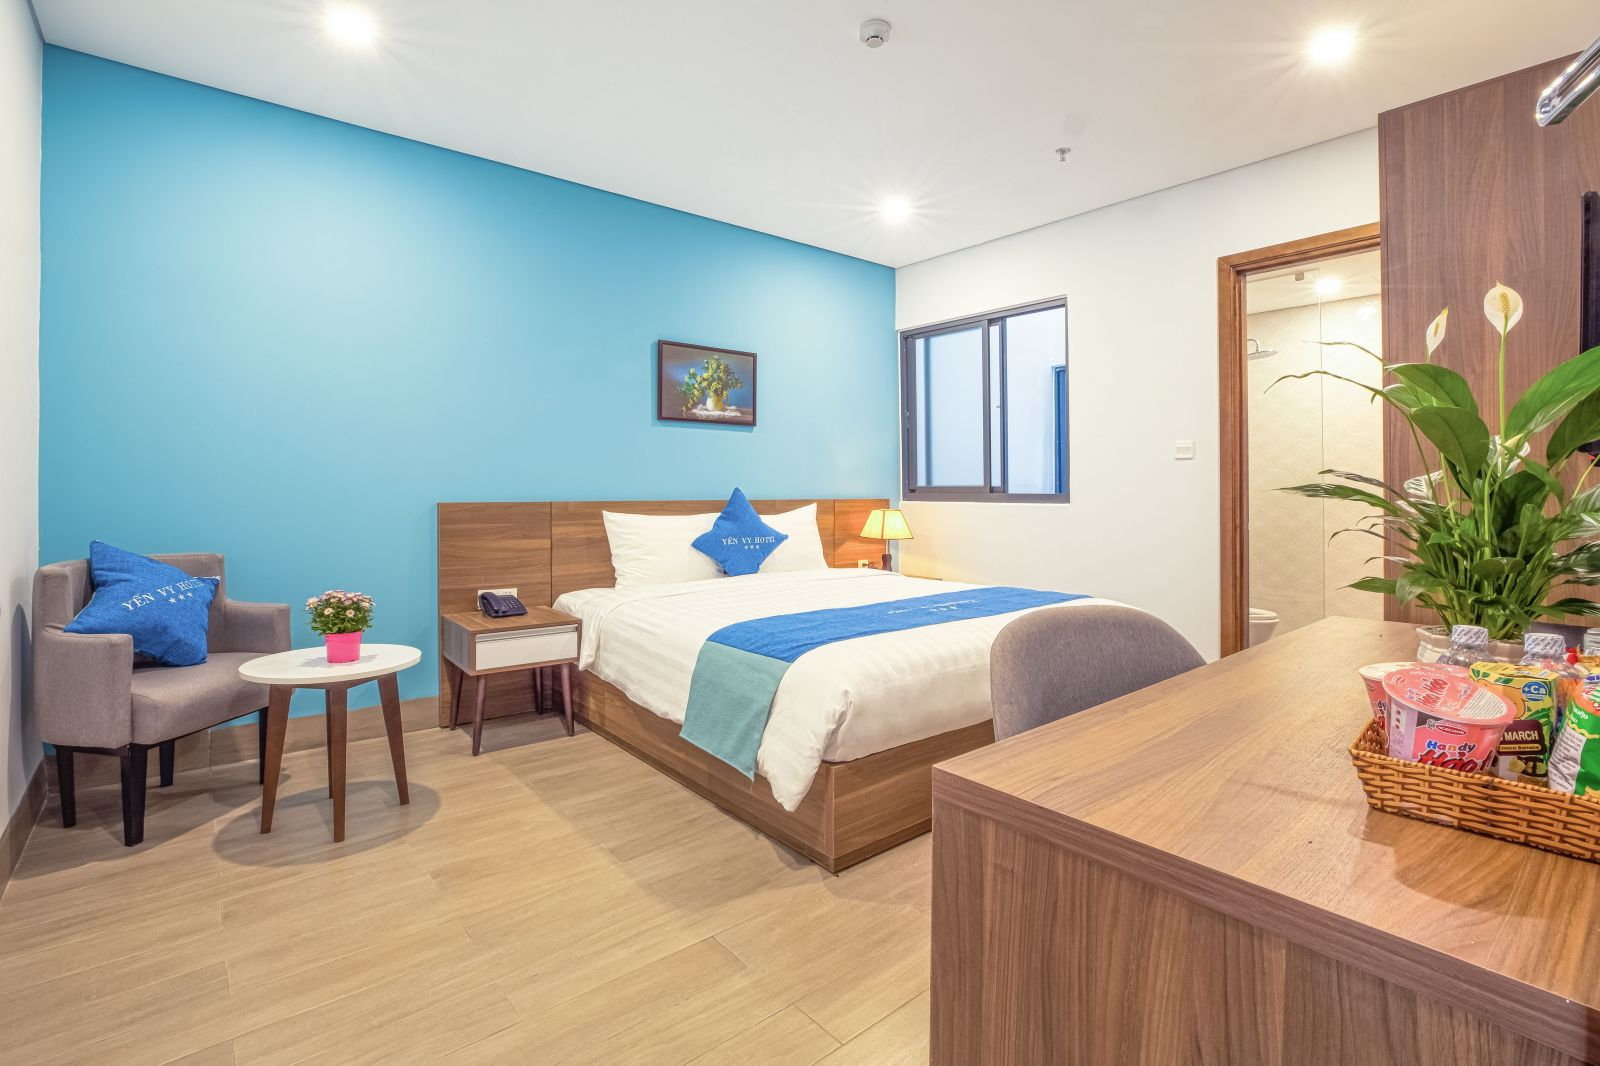 Superior Double Room - Yến Vy Hotel